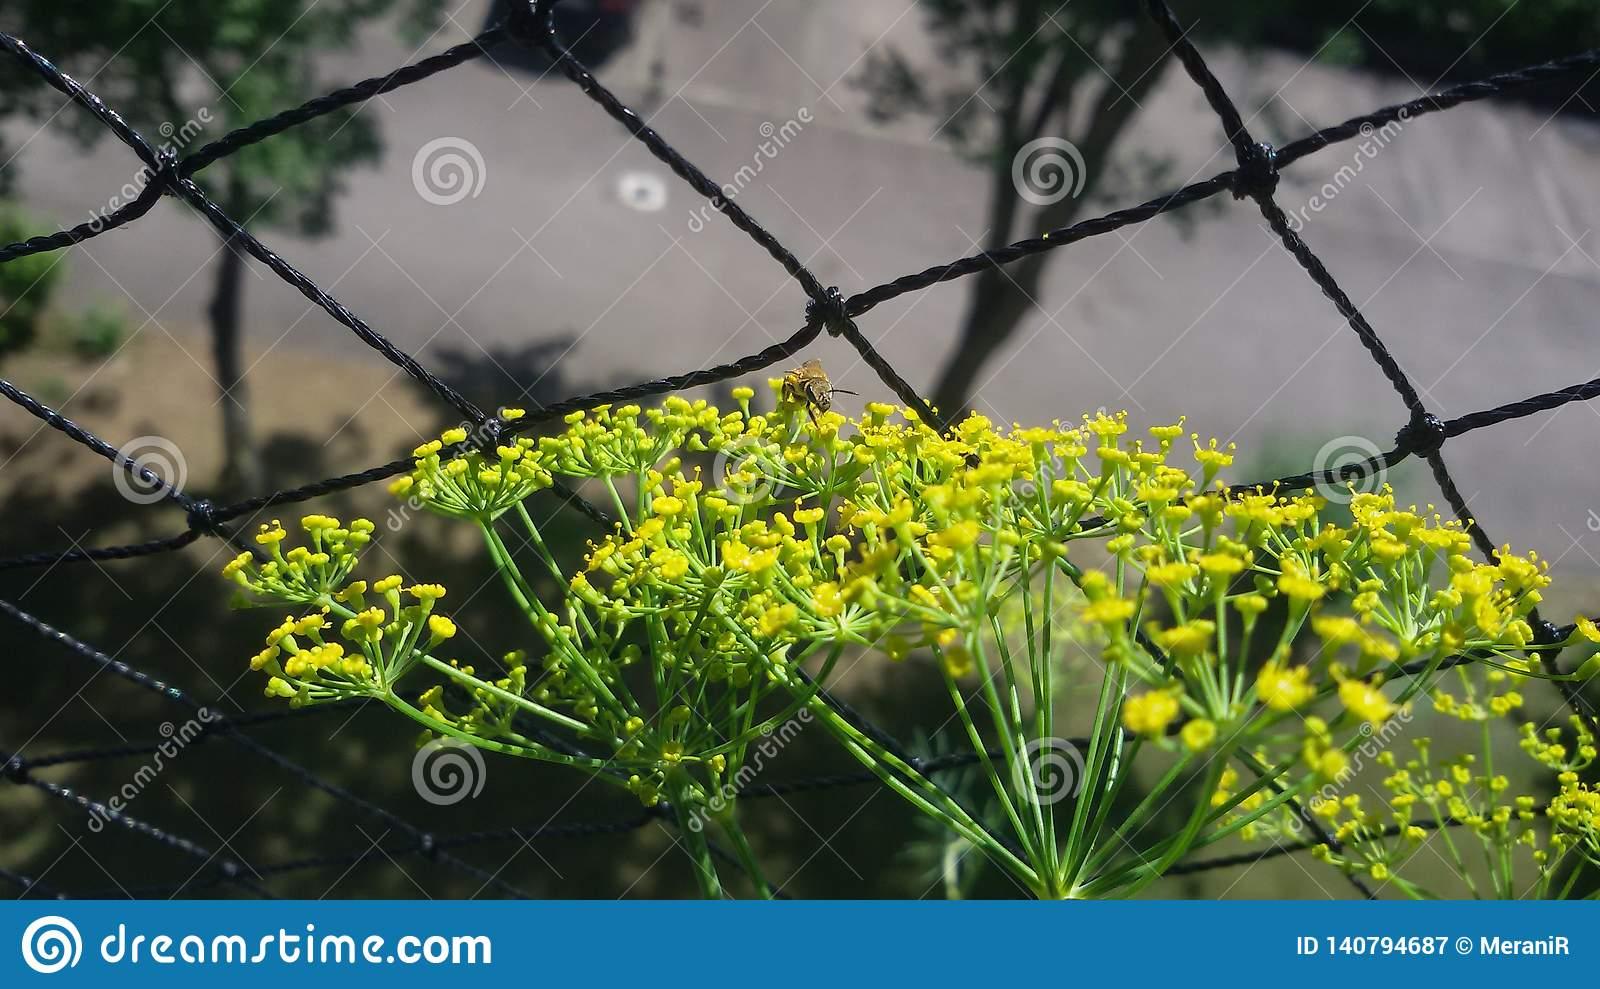 2. Wild bee from Front, gets nectar, on dill flower.